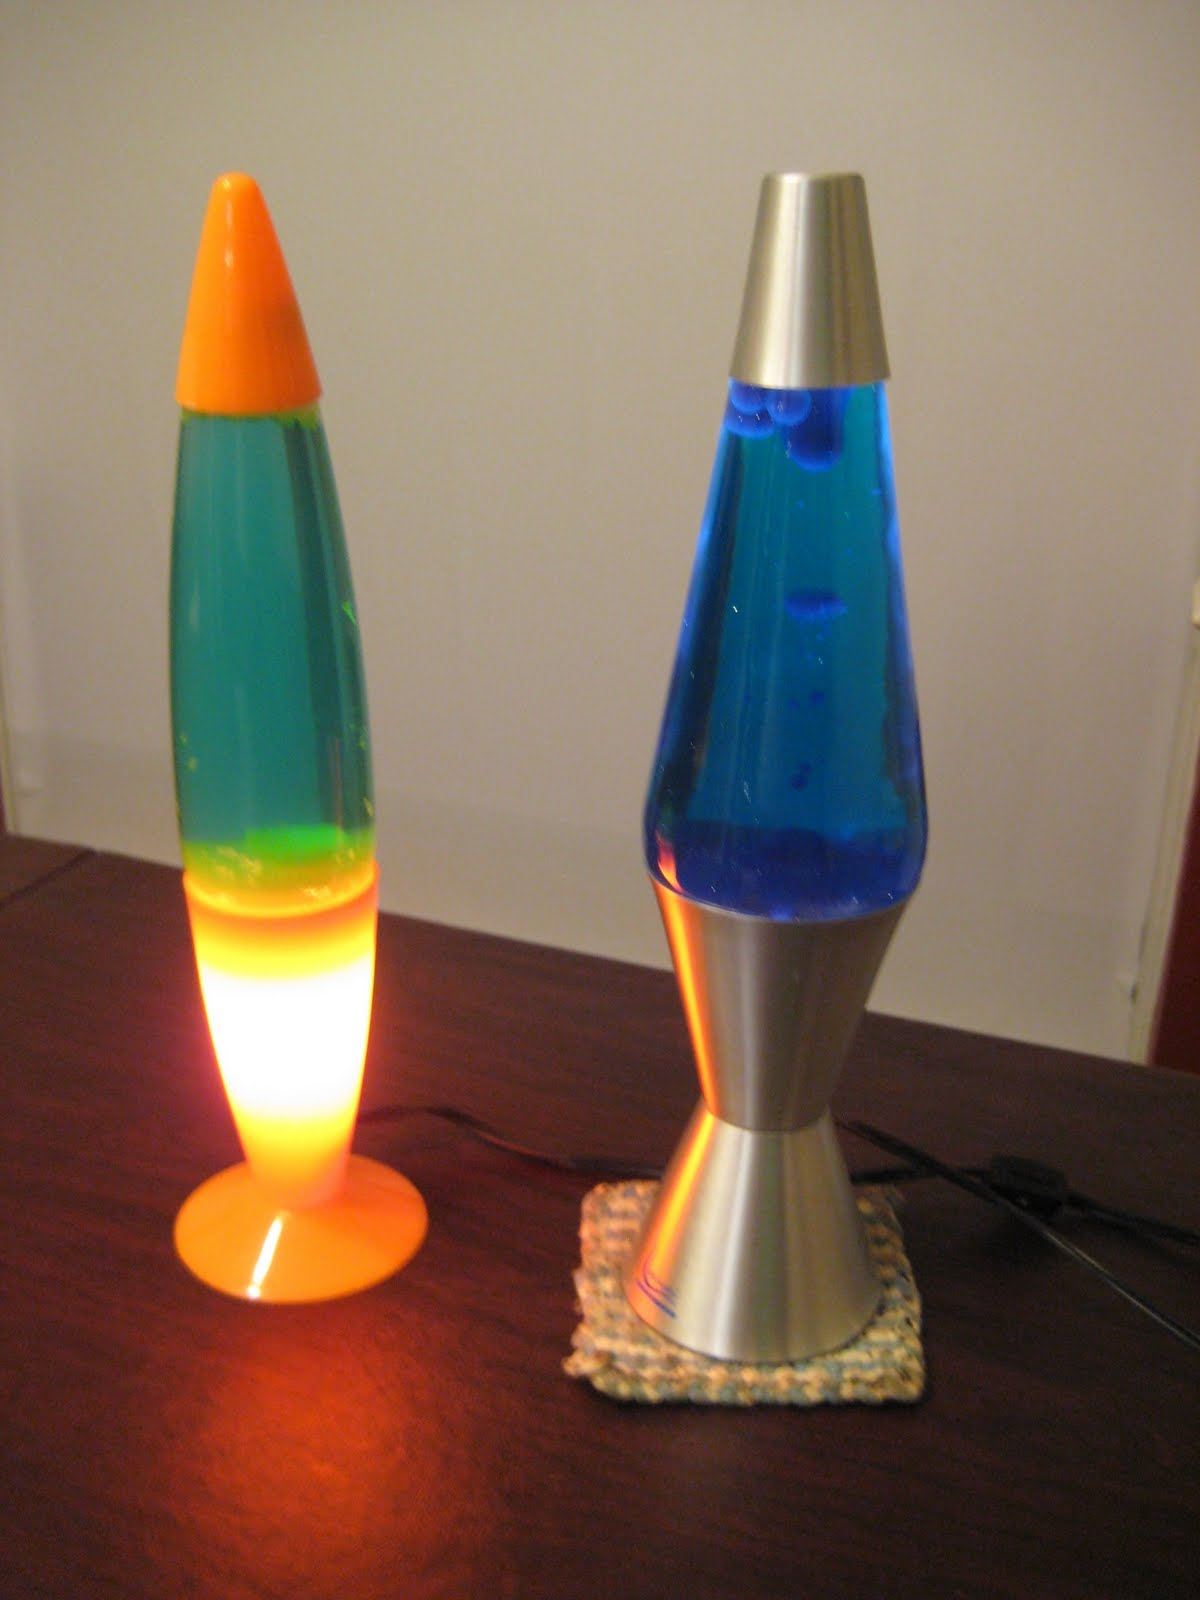 Here Are Two Lava Lamps In Our Vast Collection. One Works Pretty Good,  Except It Was Burning A Hole In The Table.